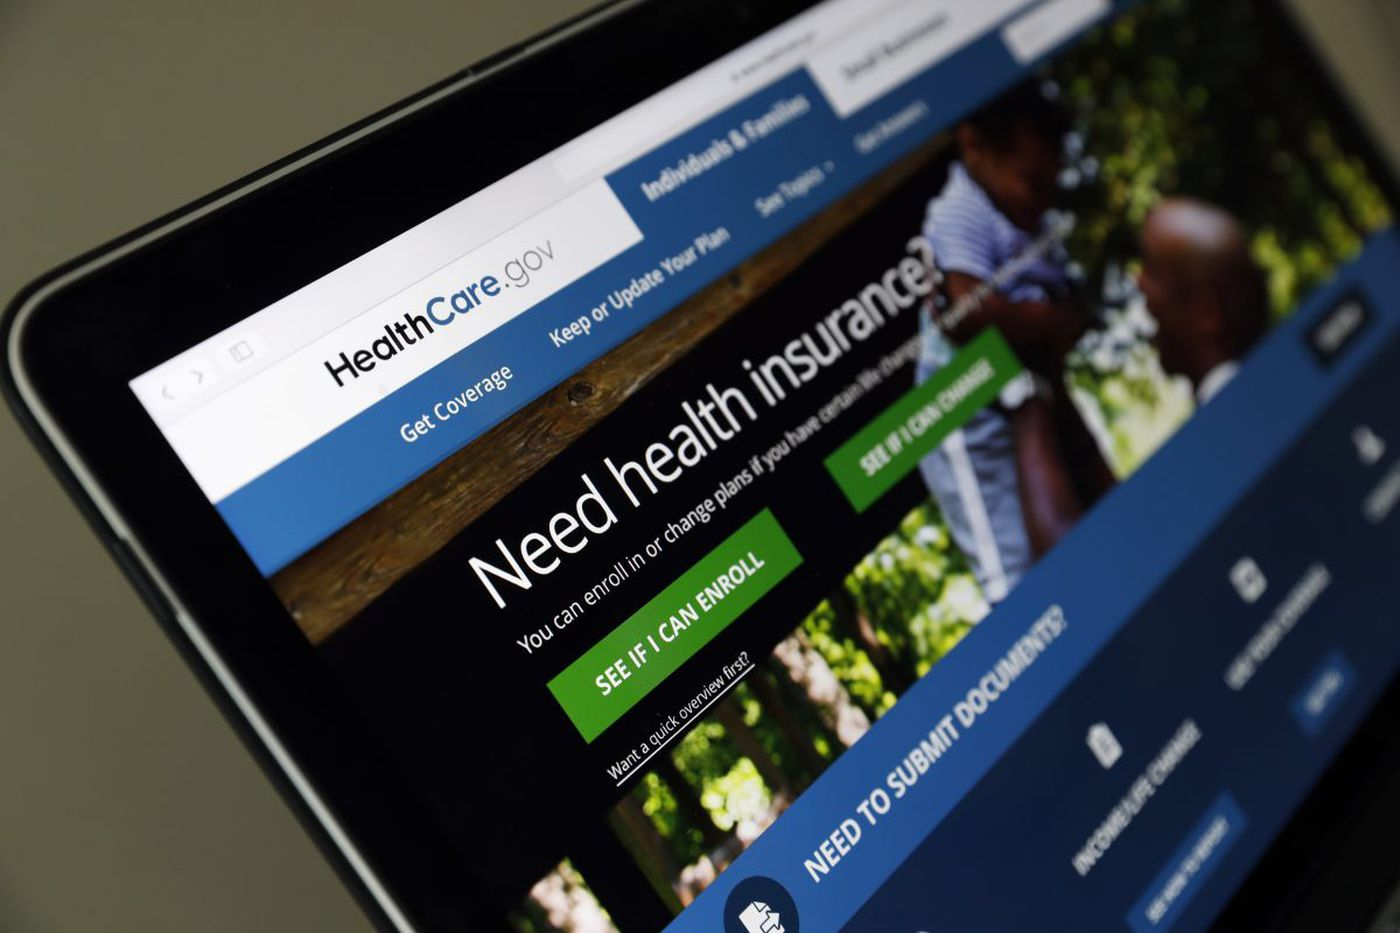 In Obamacare Marketplace, auto-enrollment could be unpleasant surprise if you don't act now